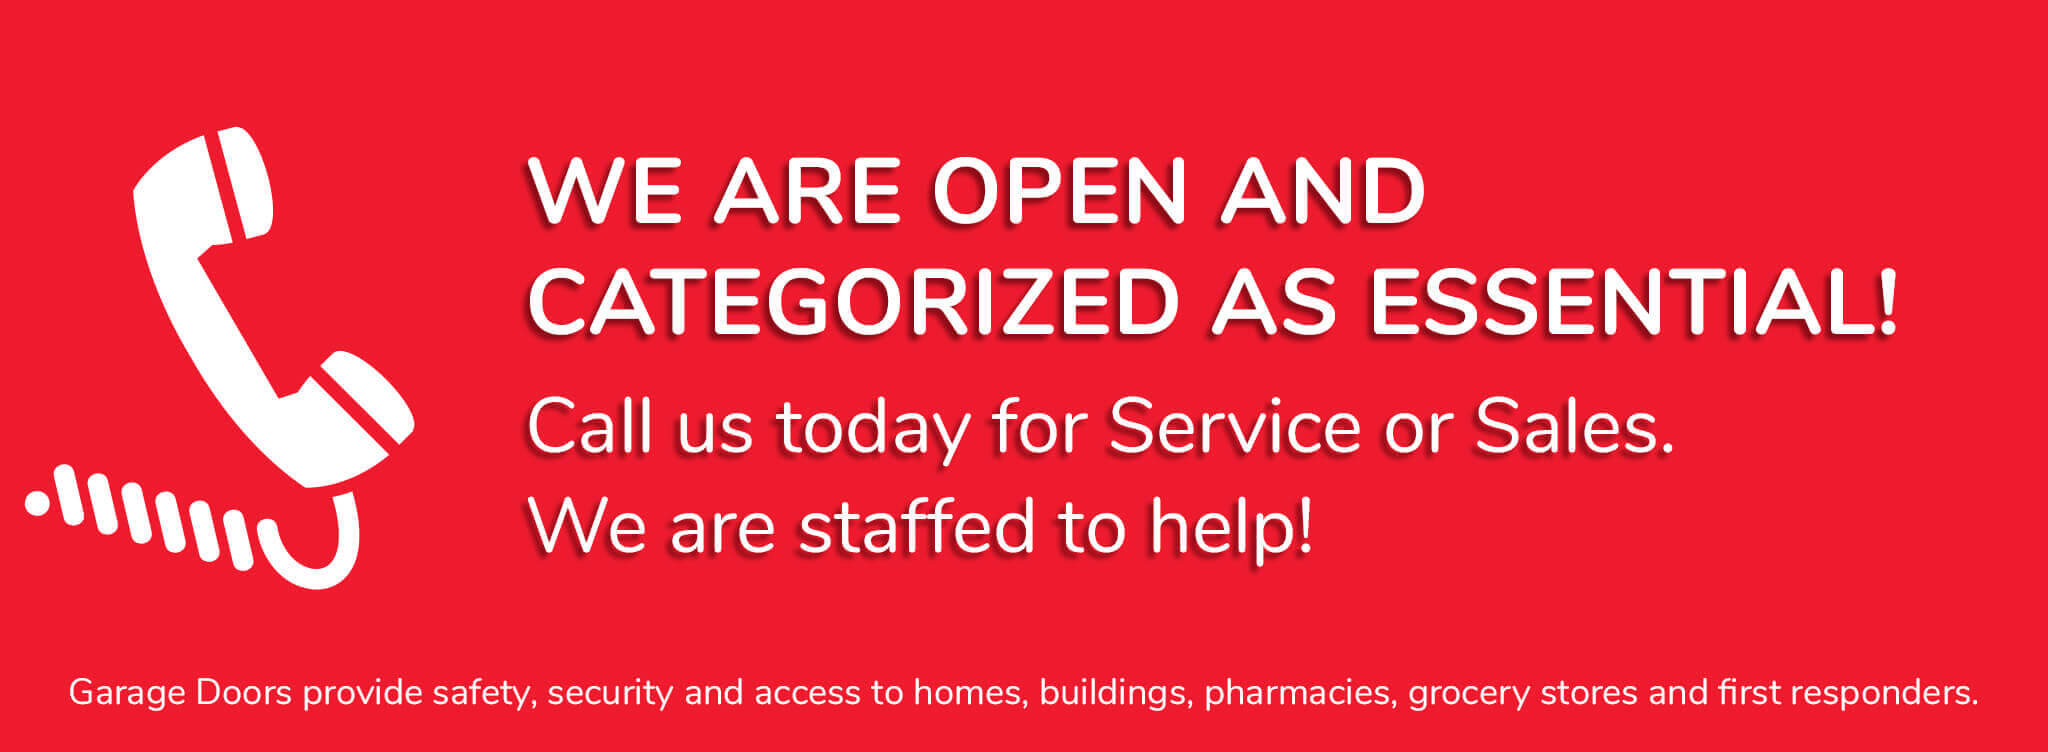 We are open and categorized as essential!